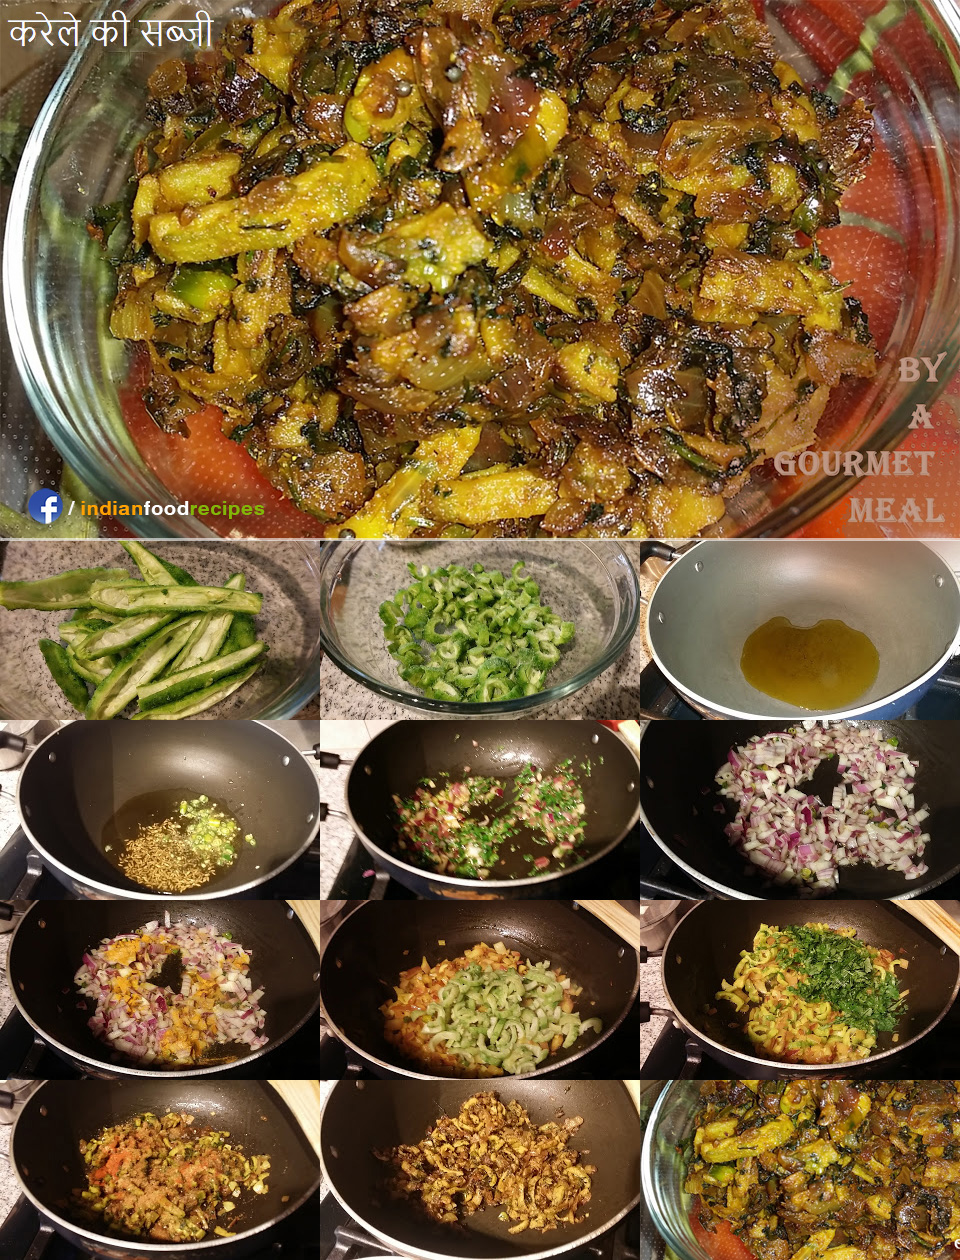 Karele ki Sabji recipe step by step